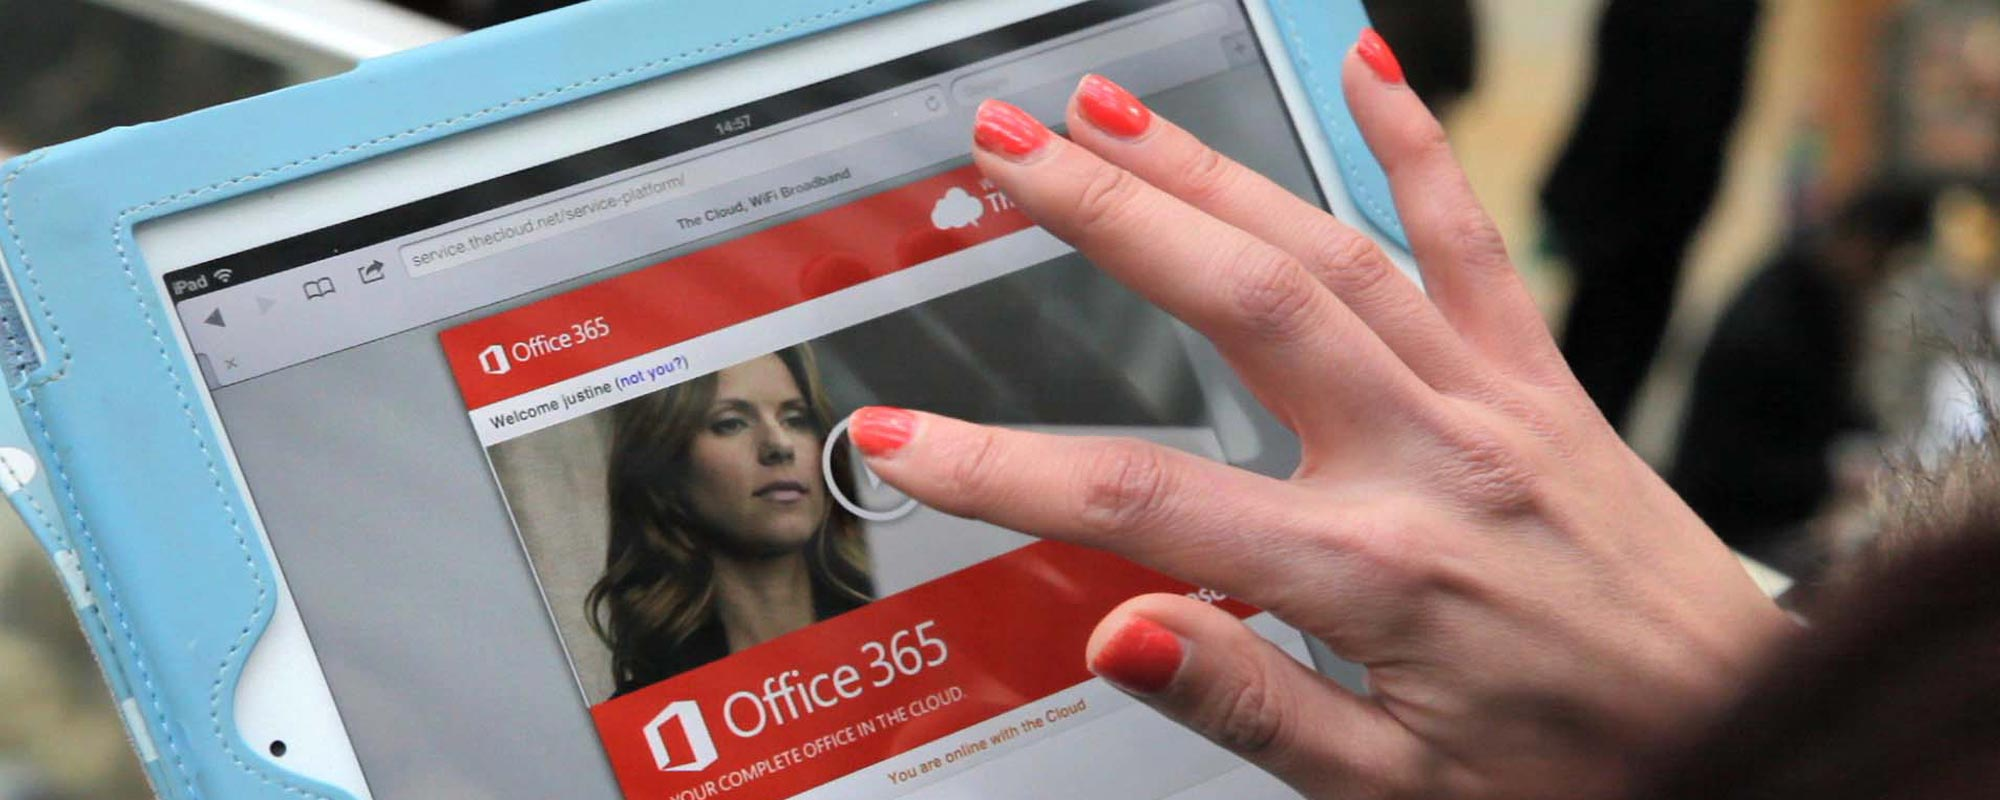 OOH Case Study - 'Work From Anywhere' with Office 365